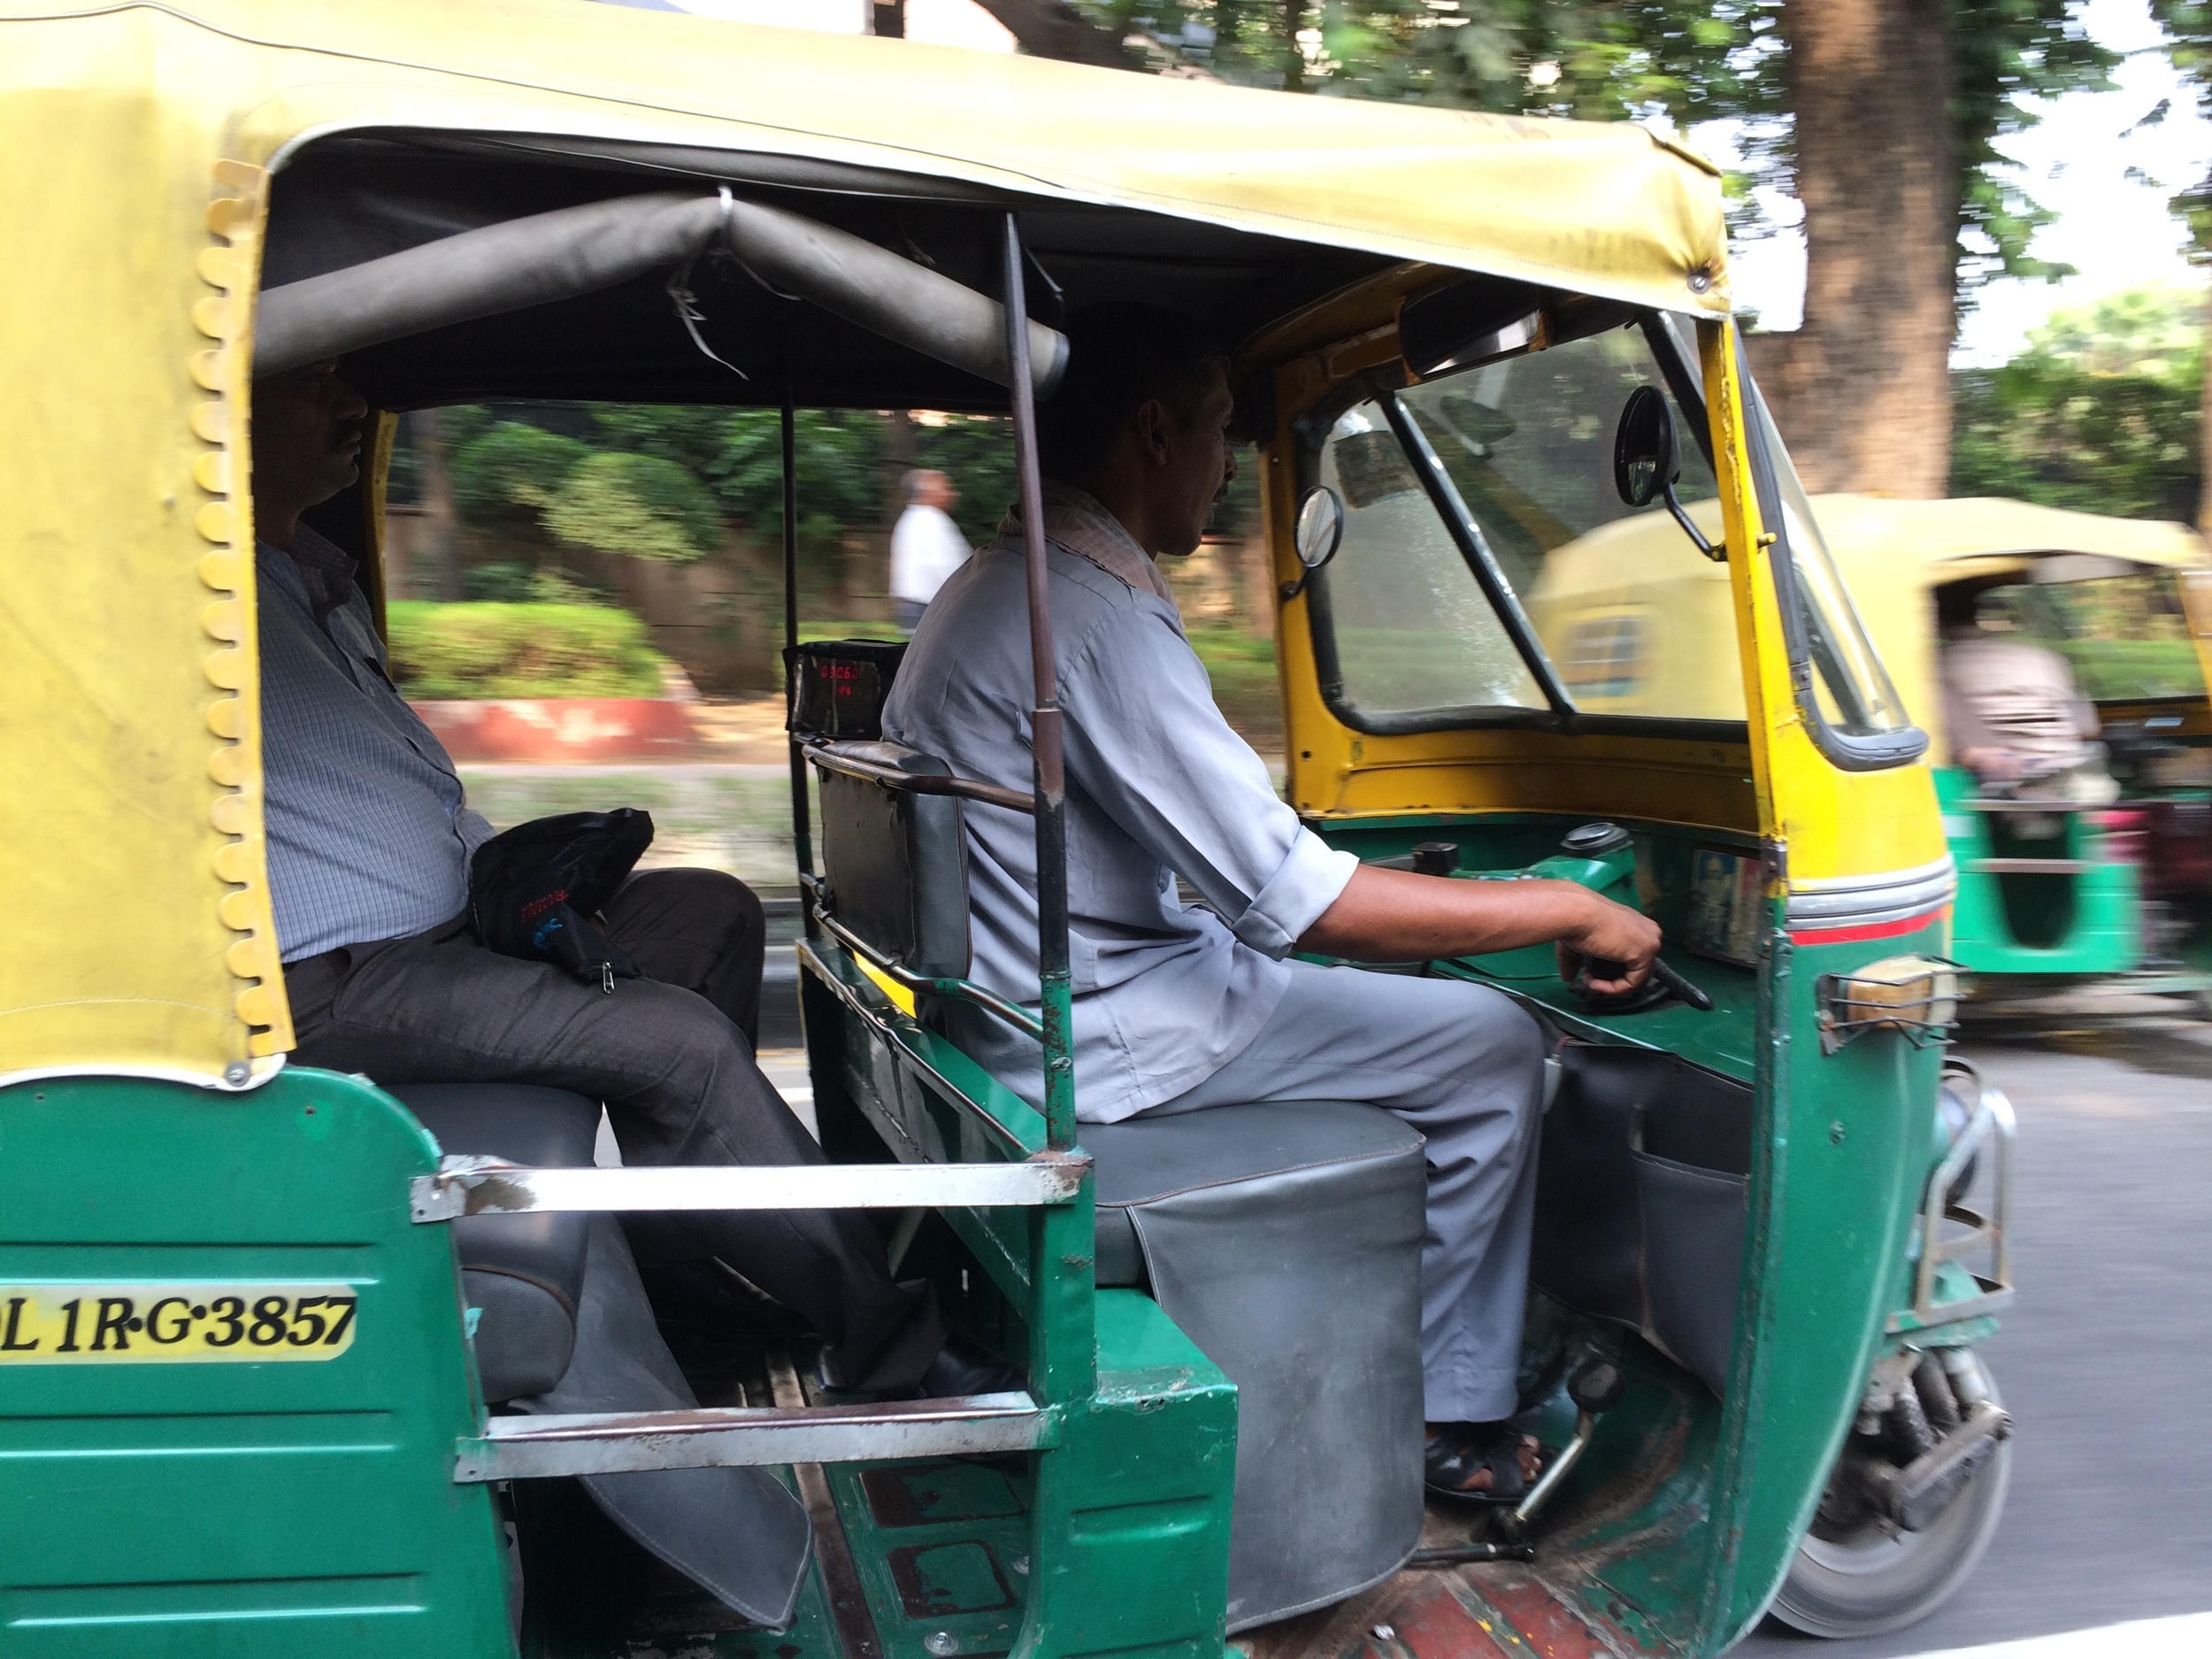 Delhi's auto-rickshaws are everywhere.